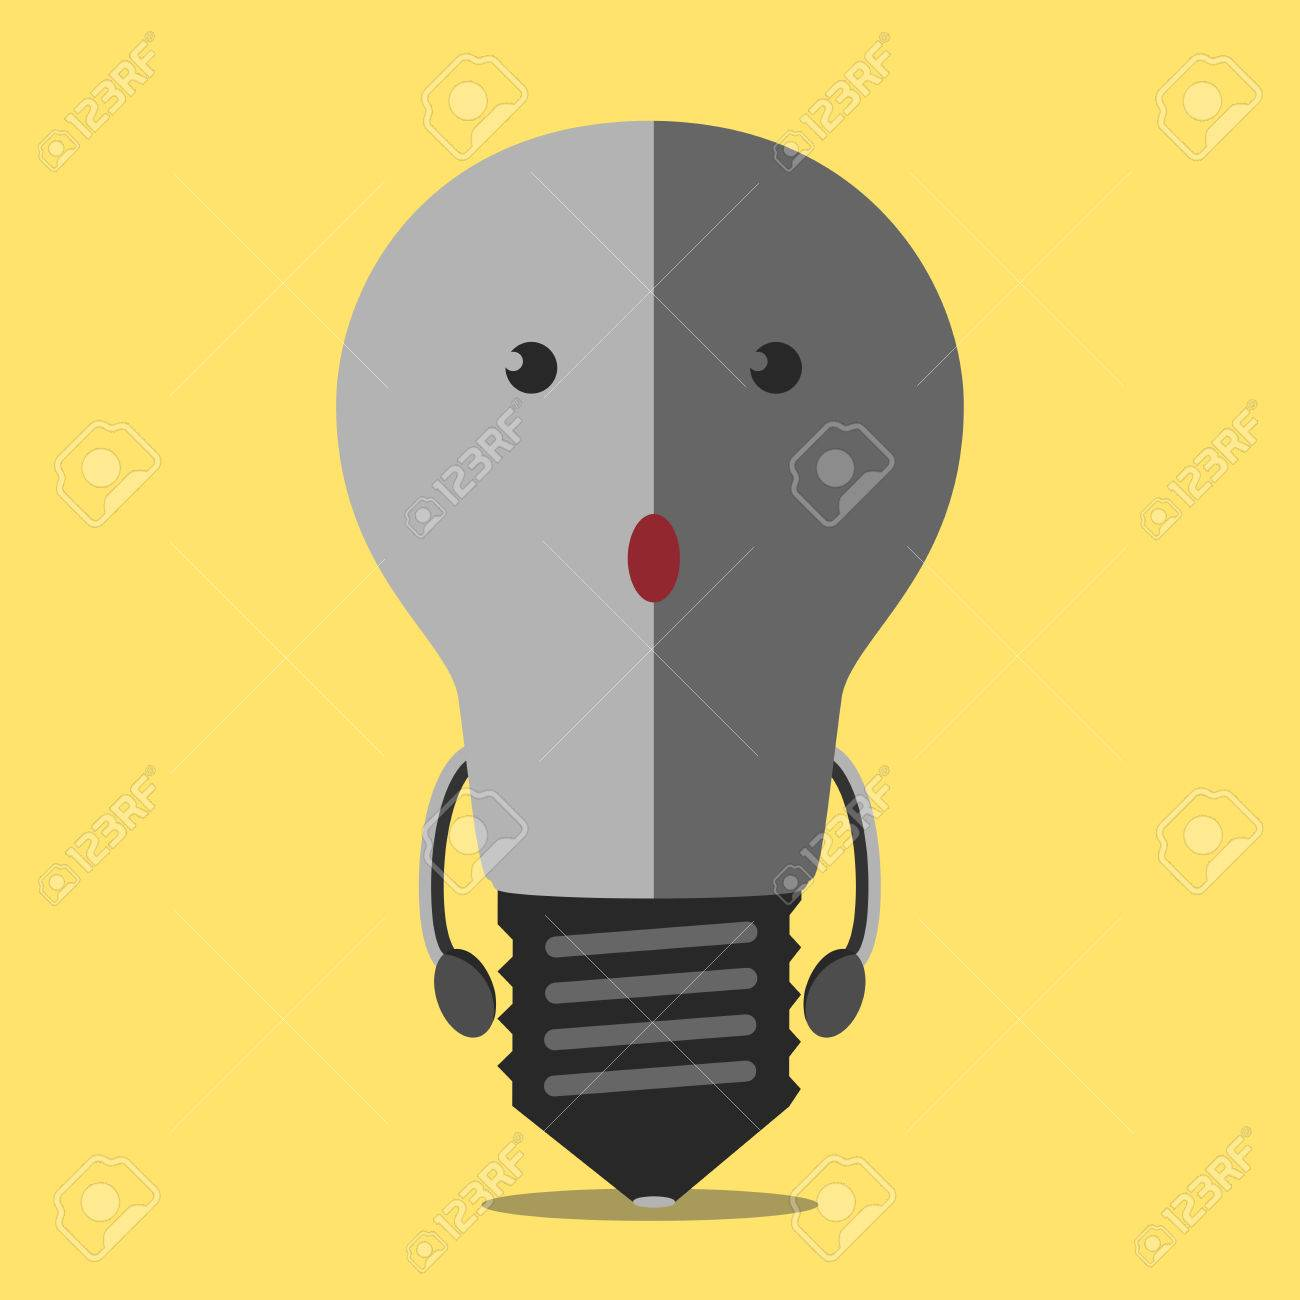 Turned off burned dull gray light bulb character on yellow. Light bulb, idea, creativity, crisis, power outage, failure, energy concept. - 53685085